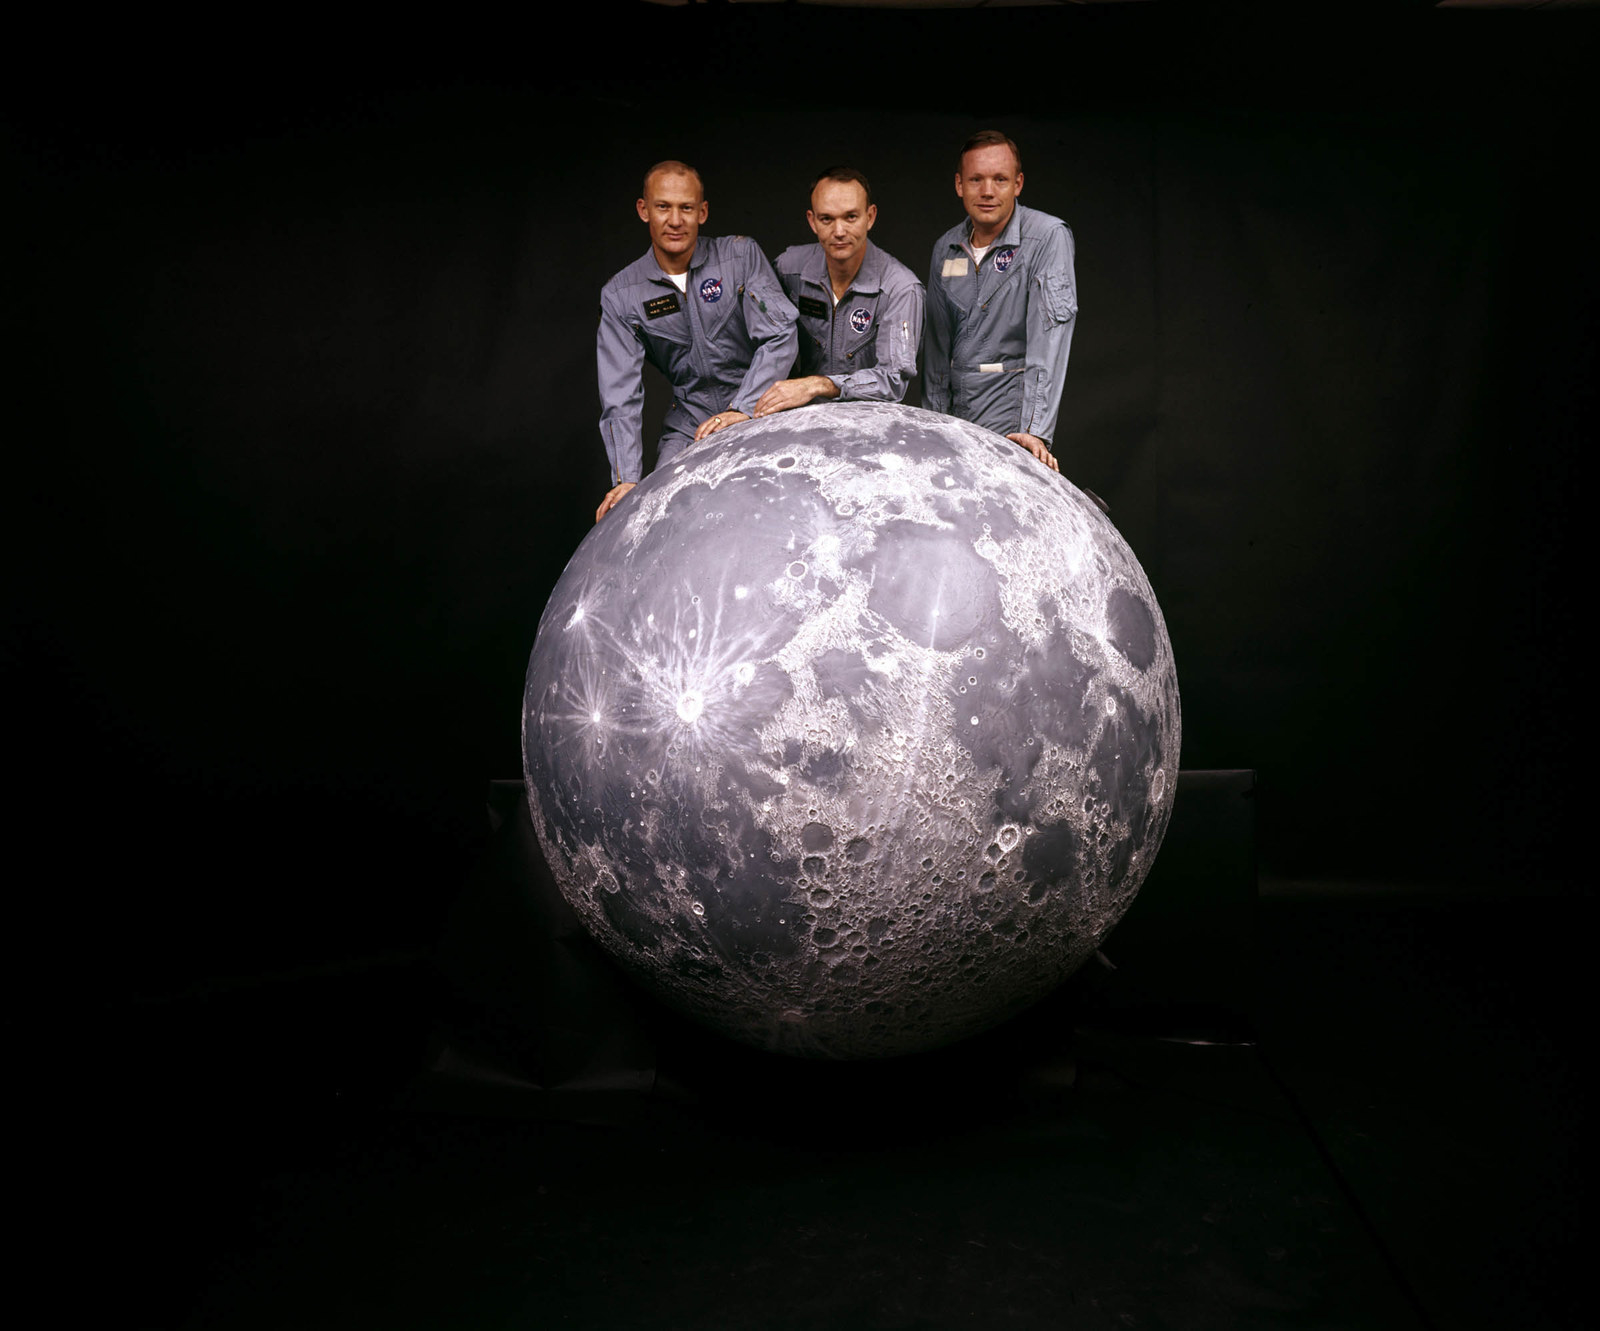 1969 Portrait of (from left) Aldrin, Collins, and Armstrong, the crew of NASA's Apollo 11 mission to the moon, as they pose on a model of the moon.